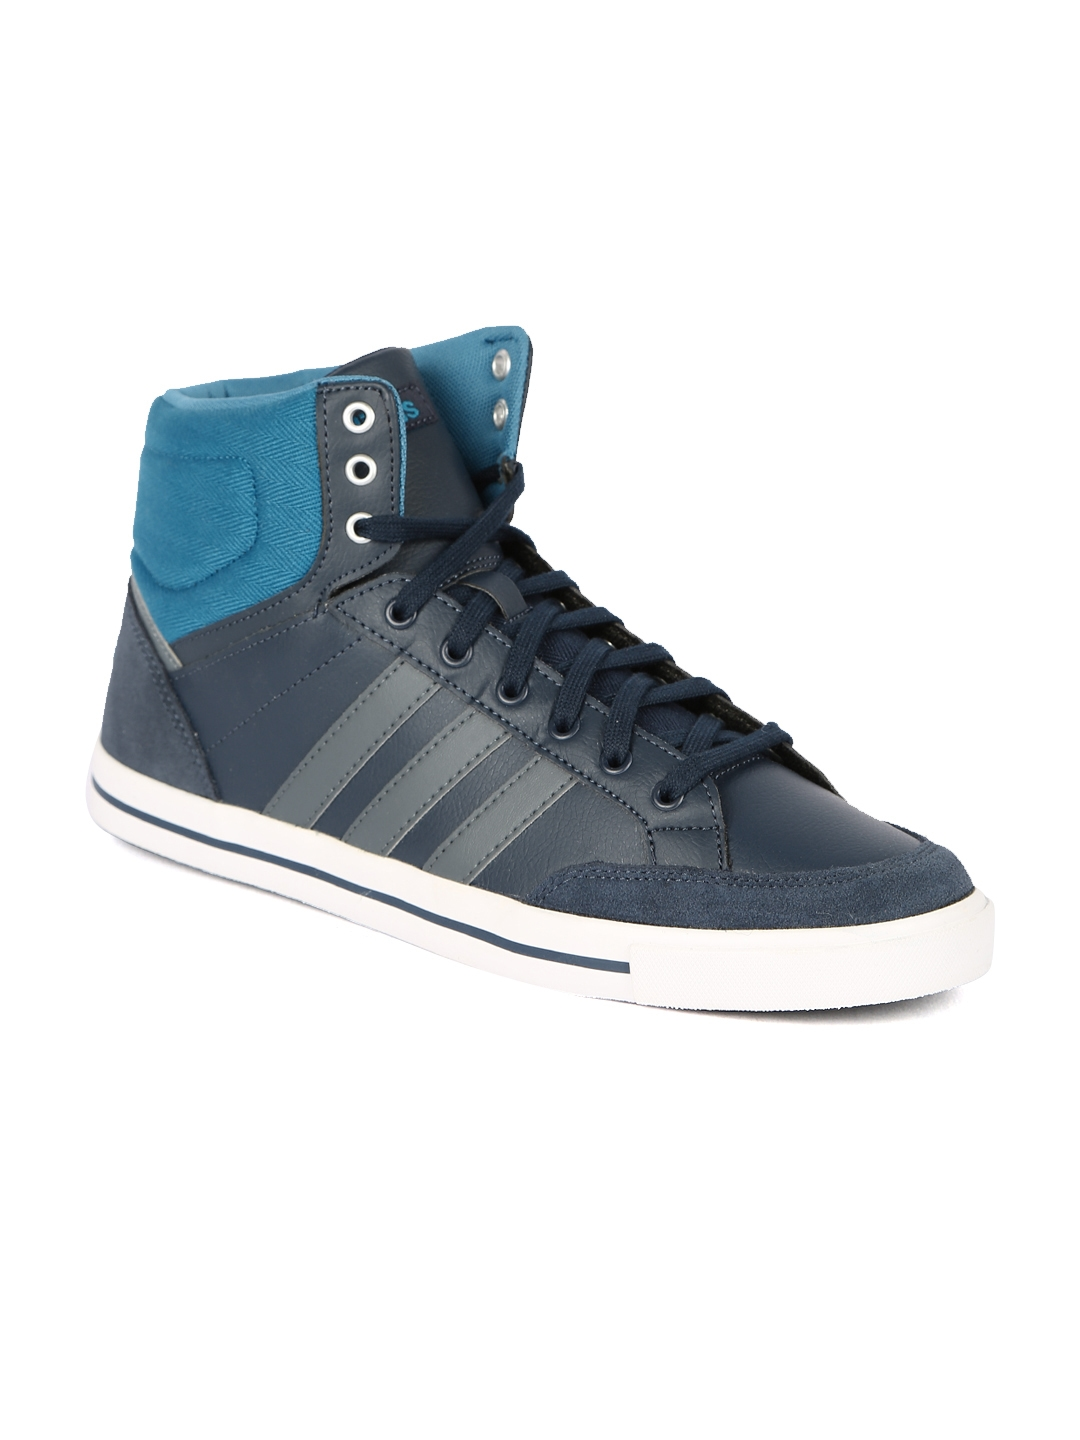 france adidas neo cacity mid sneakers 6010c fa1dd